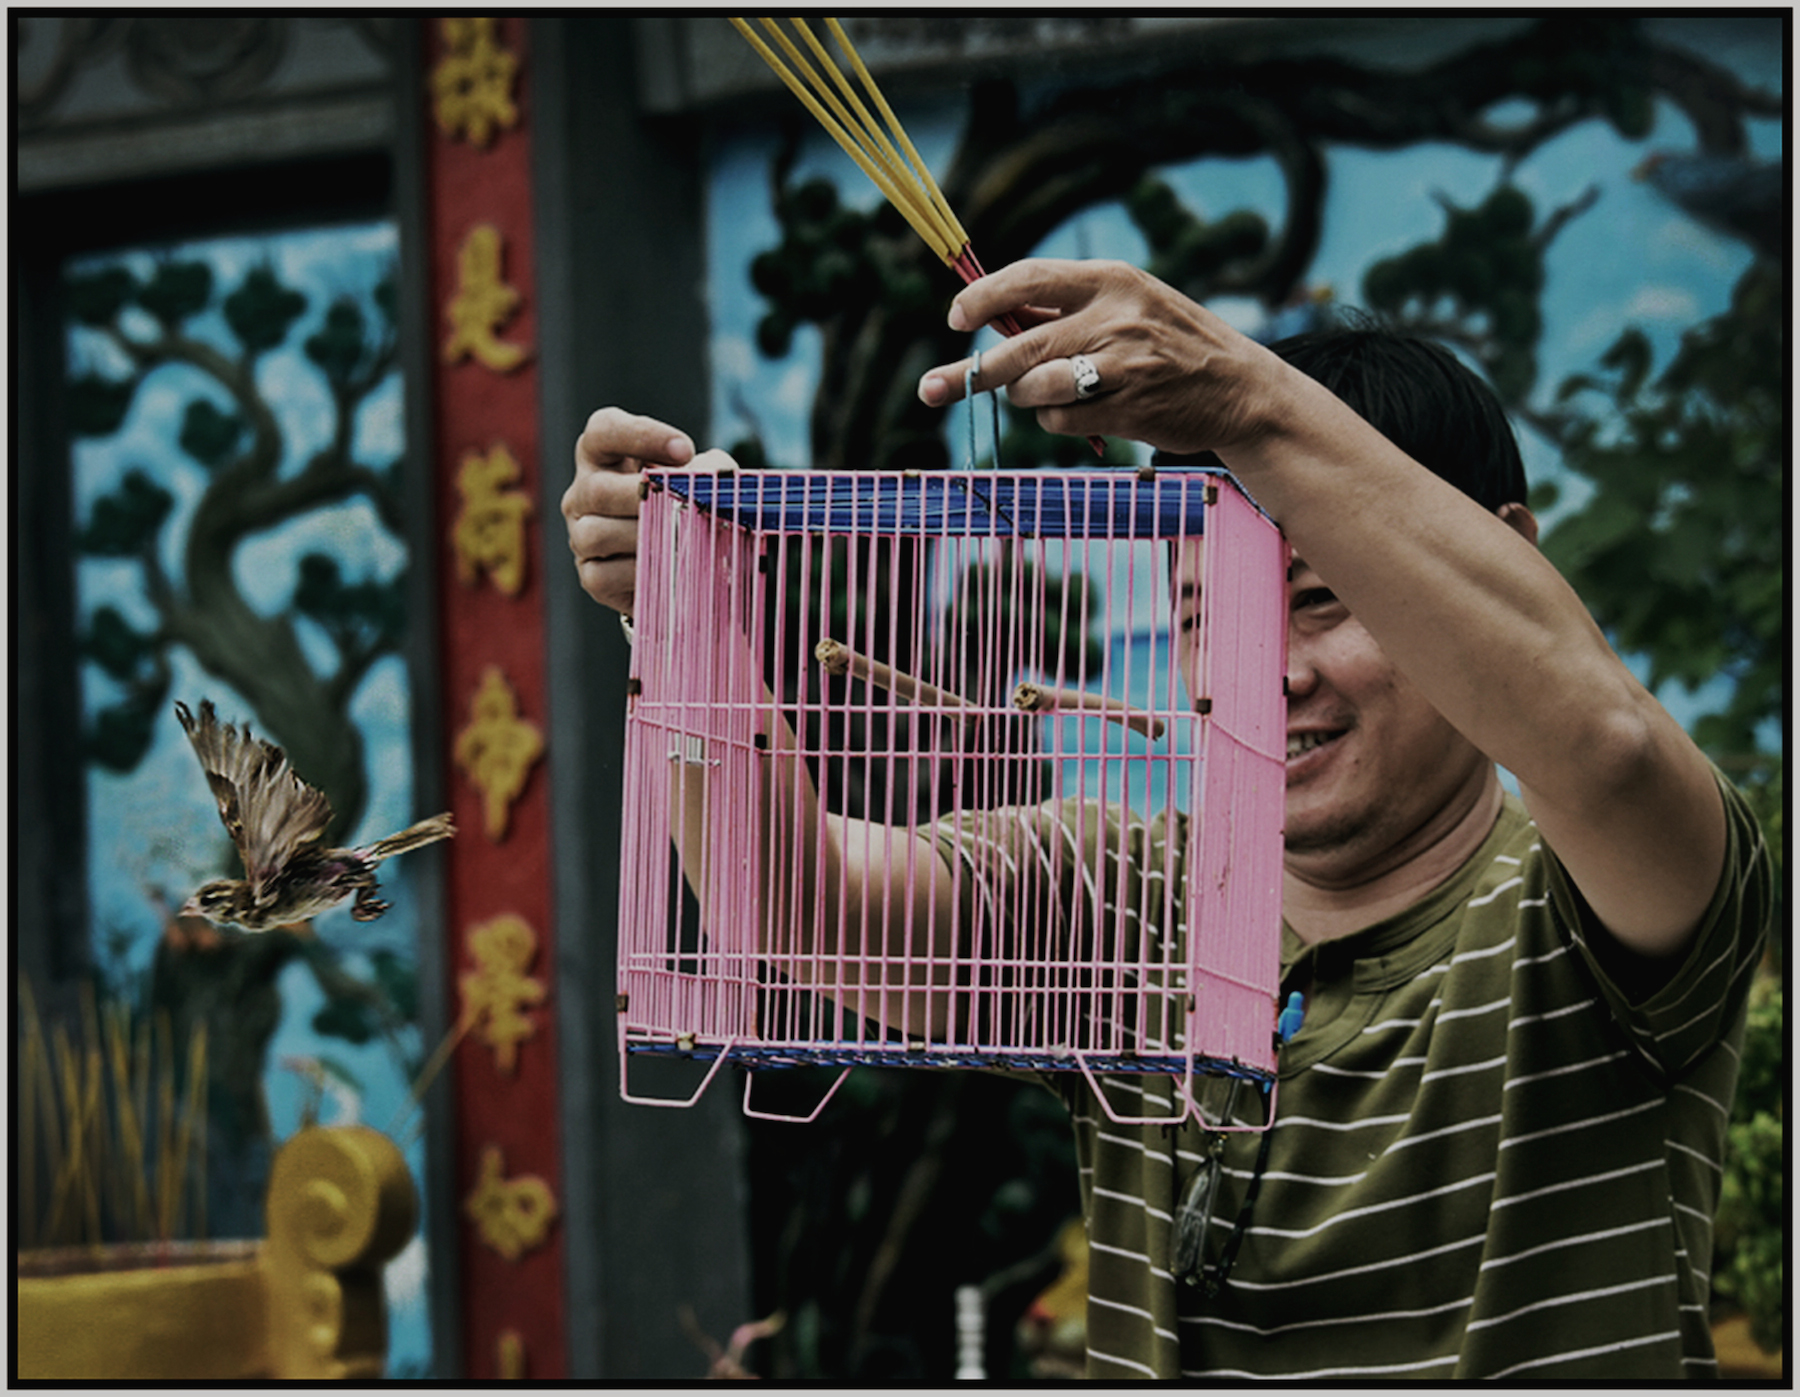 """""""Great Man"""" Buddhist Temple. A member contributes to his temple and receives several birds in a cage, which he then frees. Saigon/HCMC, Dec. 2015. #4441"""